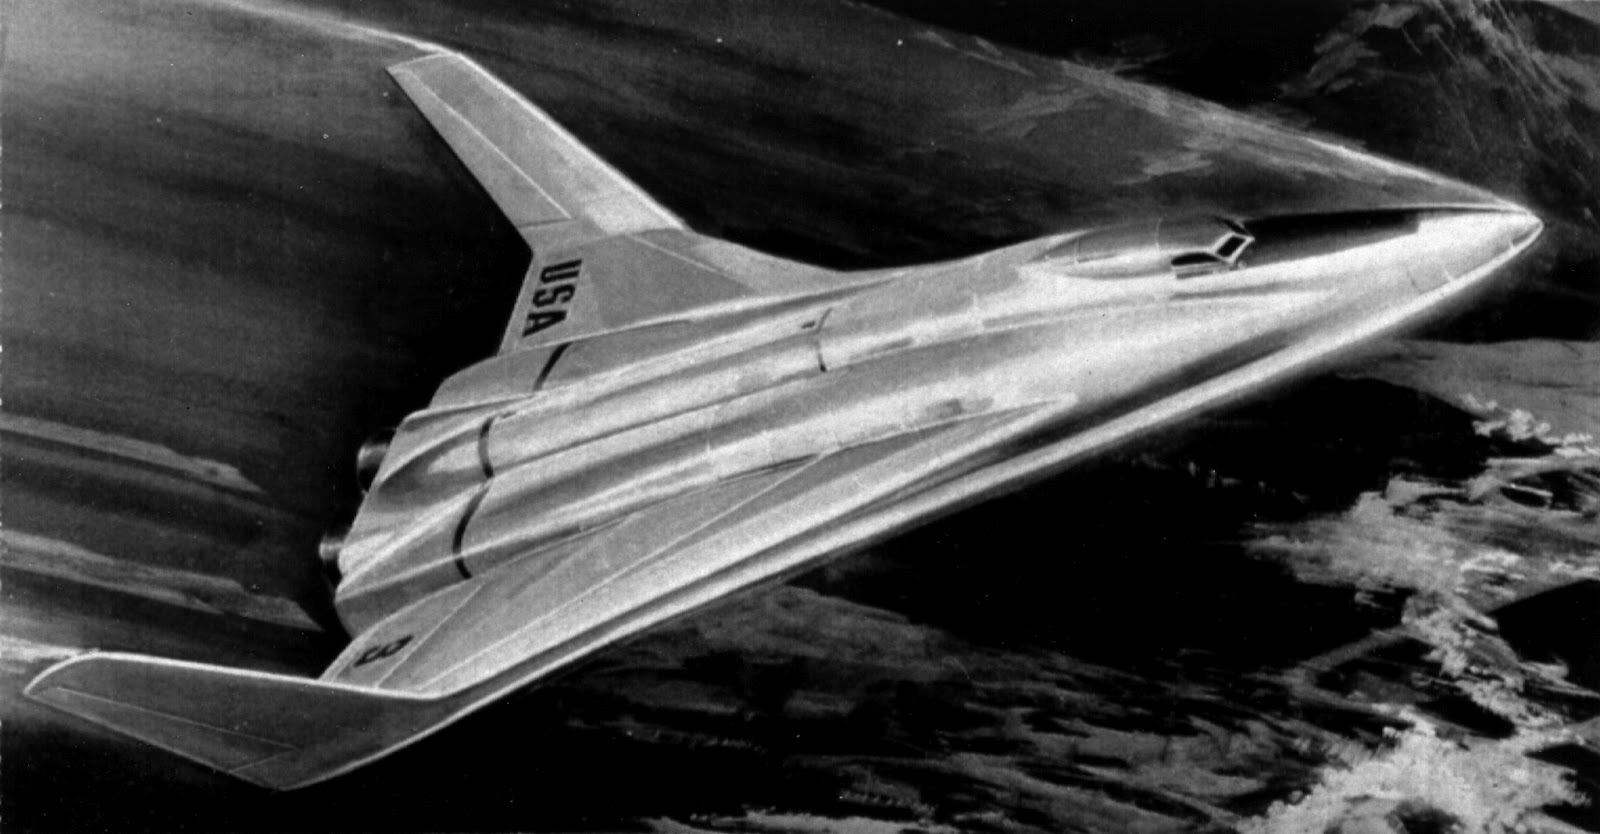 My Space Museum: Early Space Shuttle concept art